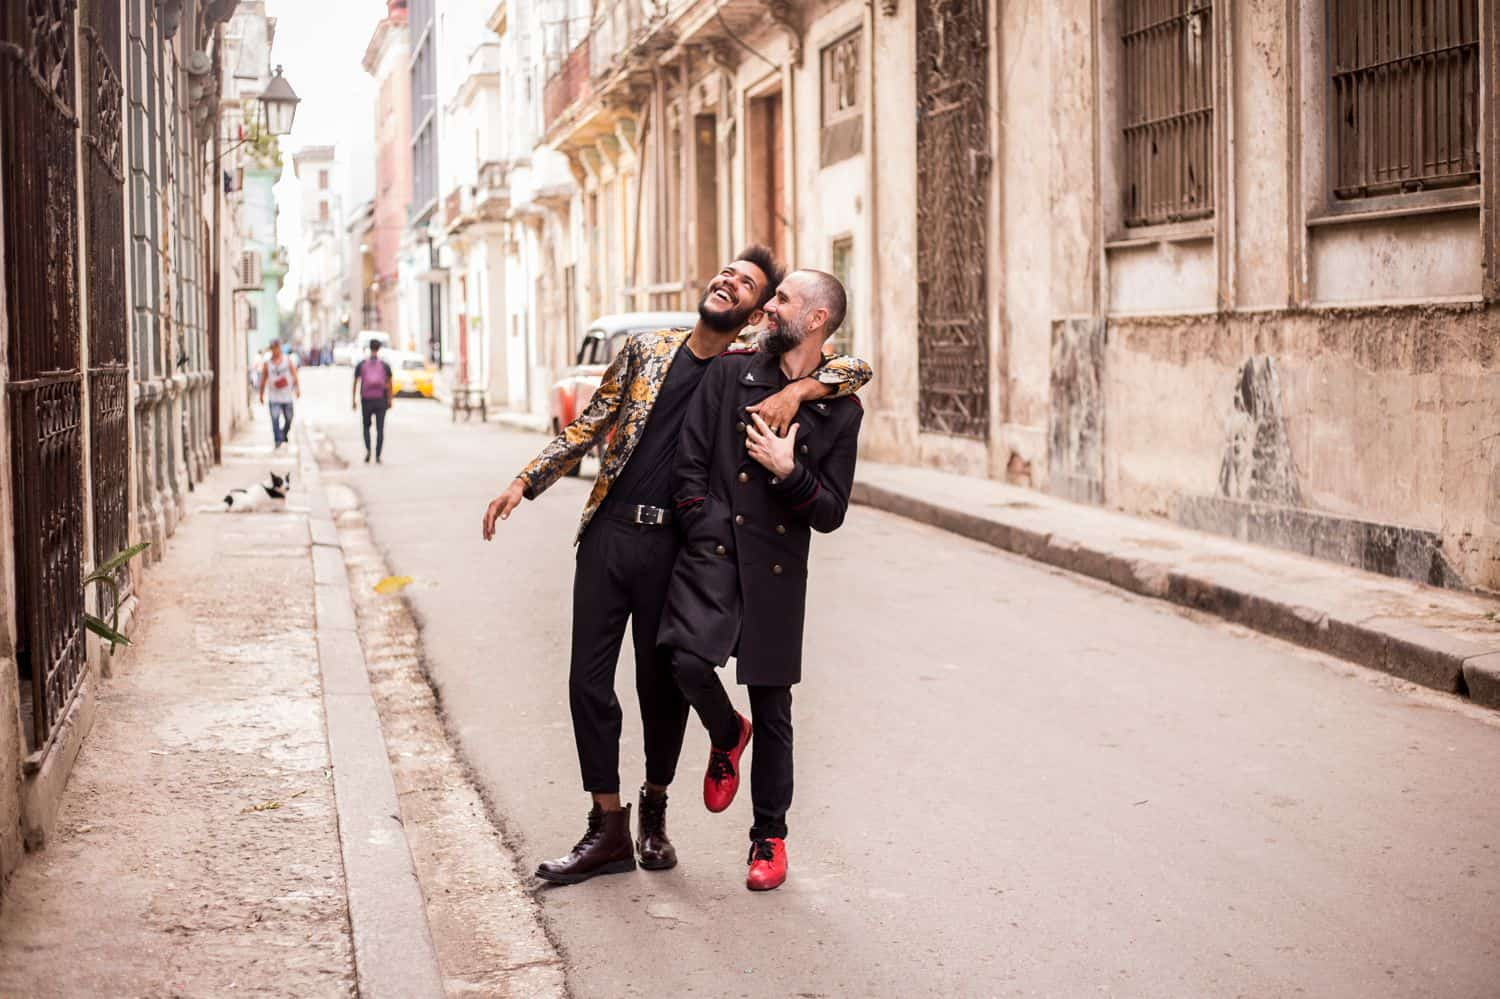 Skyrocket Your ShootProof Sales With One Easy App: Engaged couple walks through Havana streets laughing.